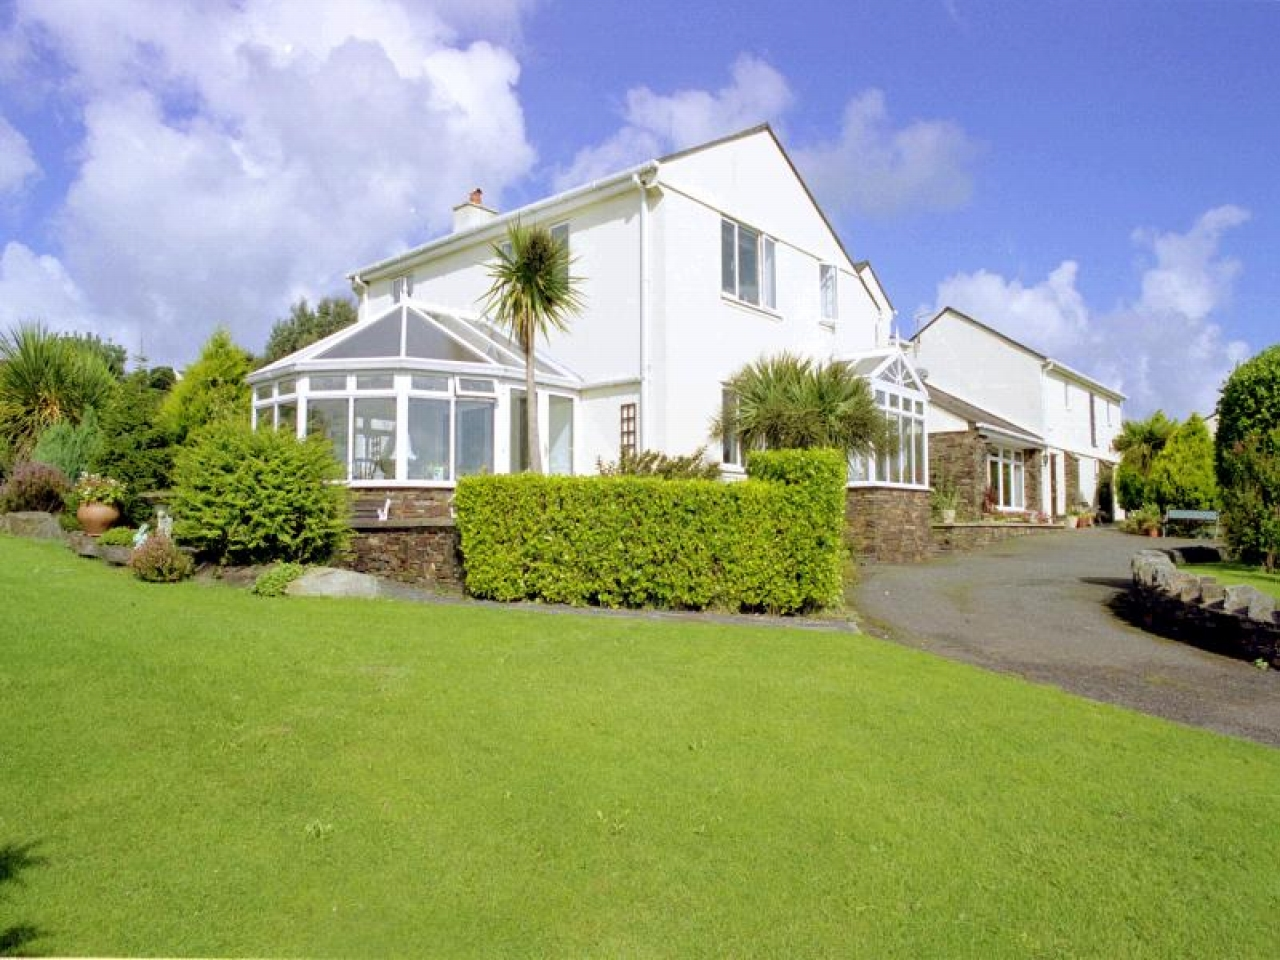 4 bedroom detached house For Sale in Laxey - Photograph 1